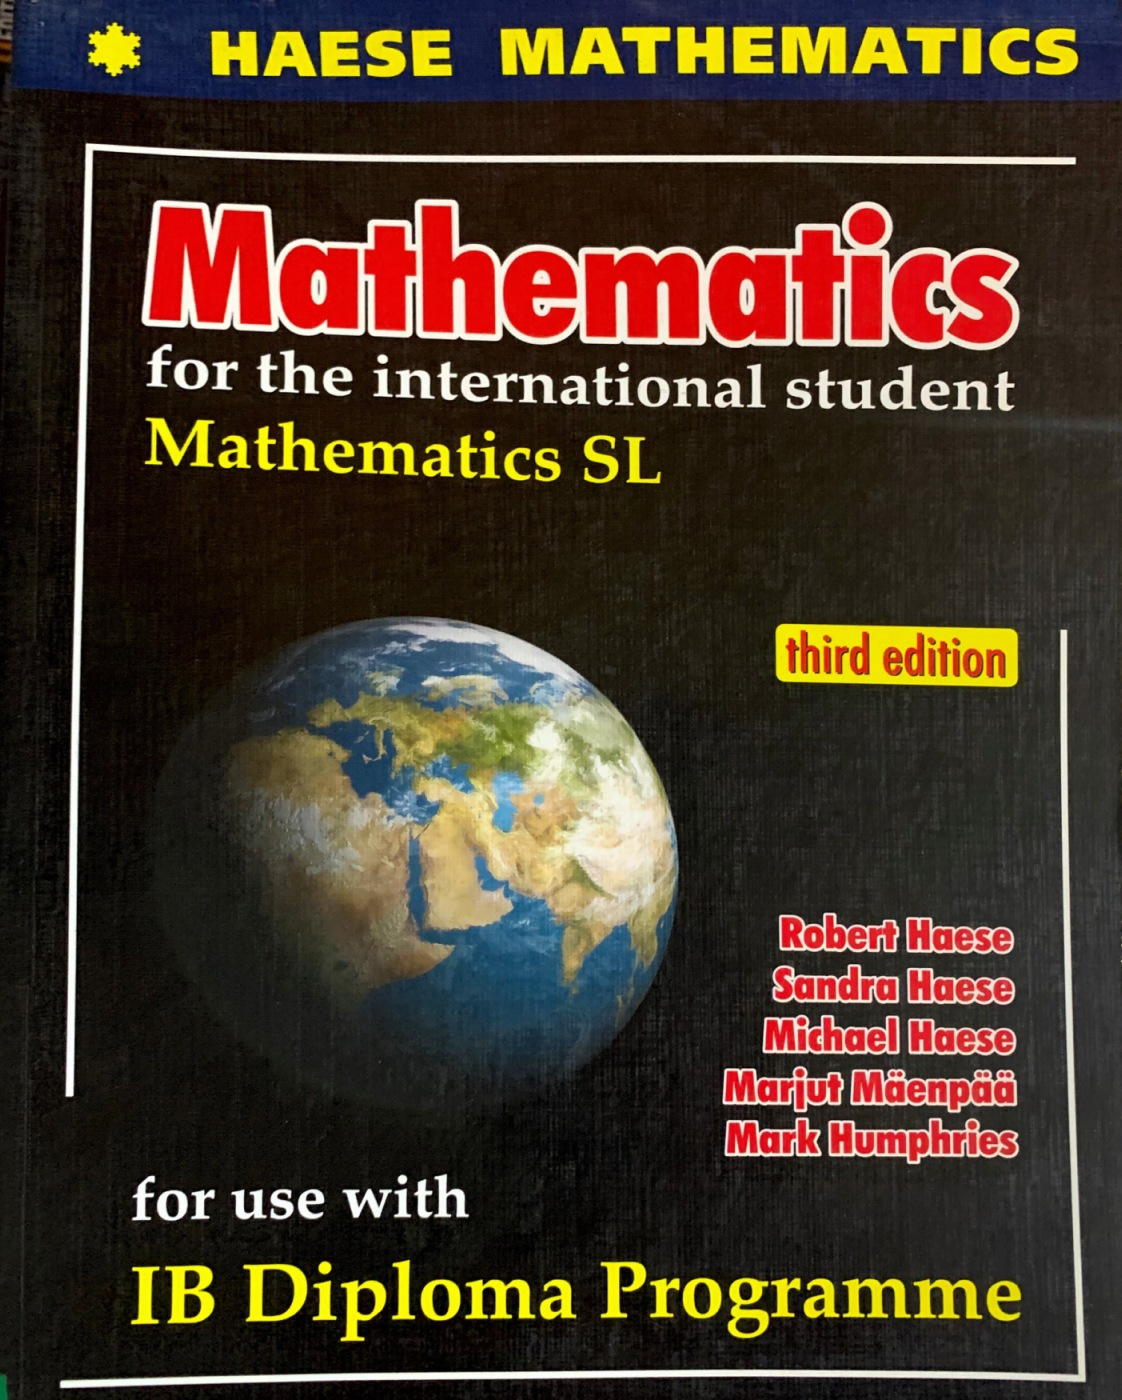 Mathematics SL Third edition Haeses Mathematics for the international student Third Edition